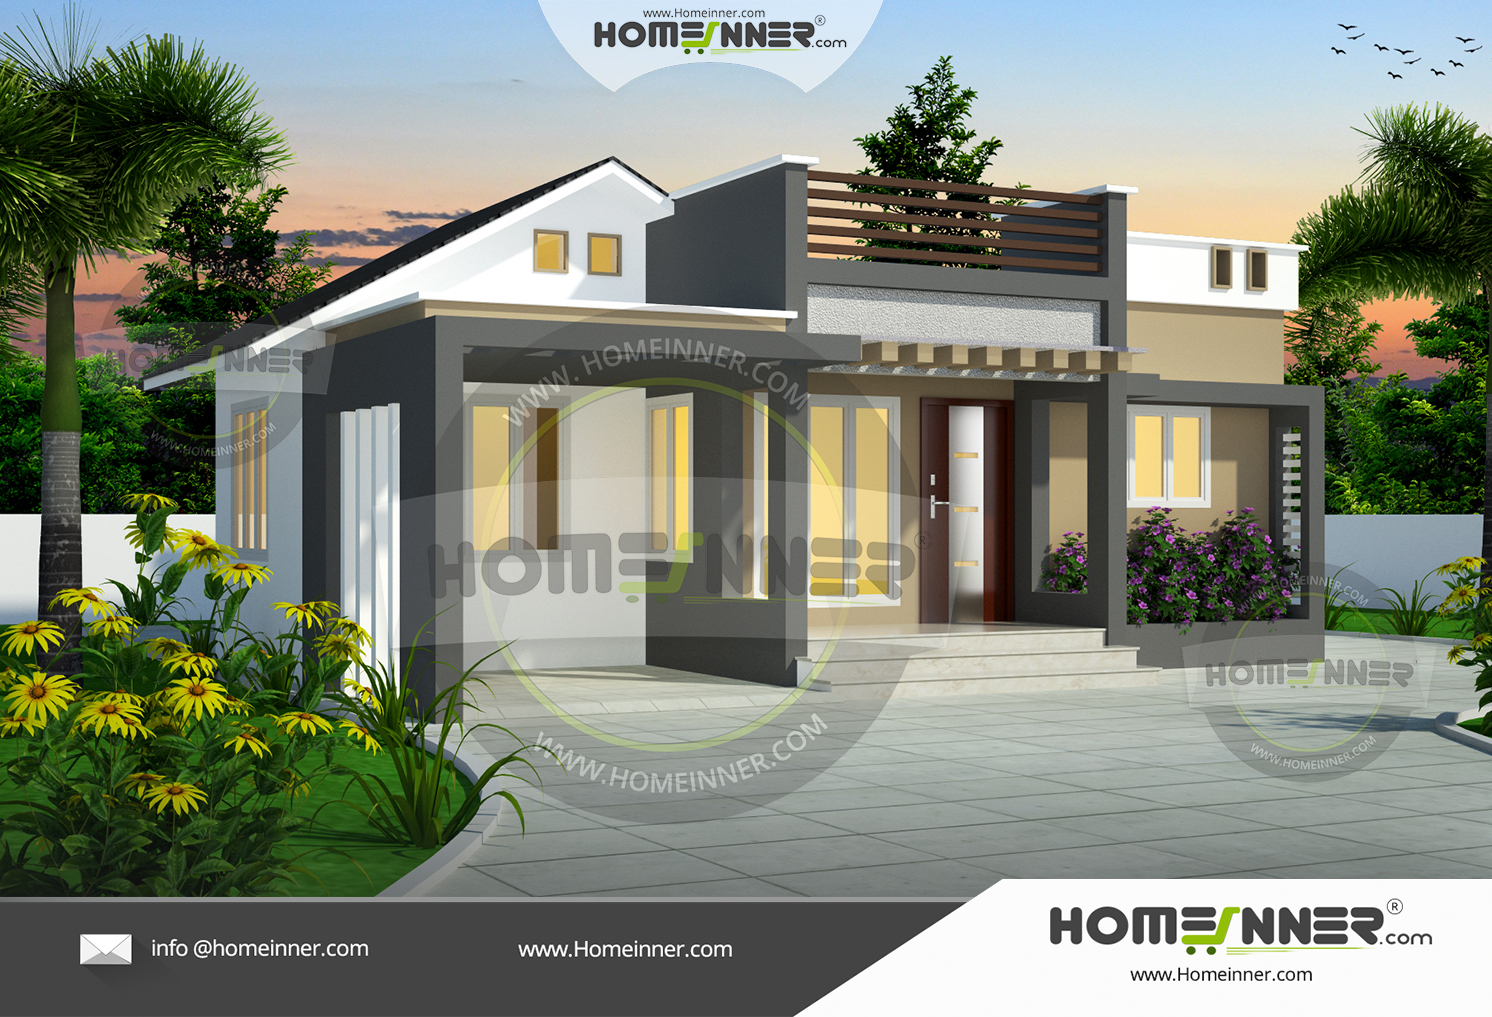 Adilabad 10 Lakh best single storey house design